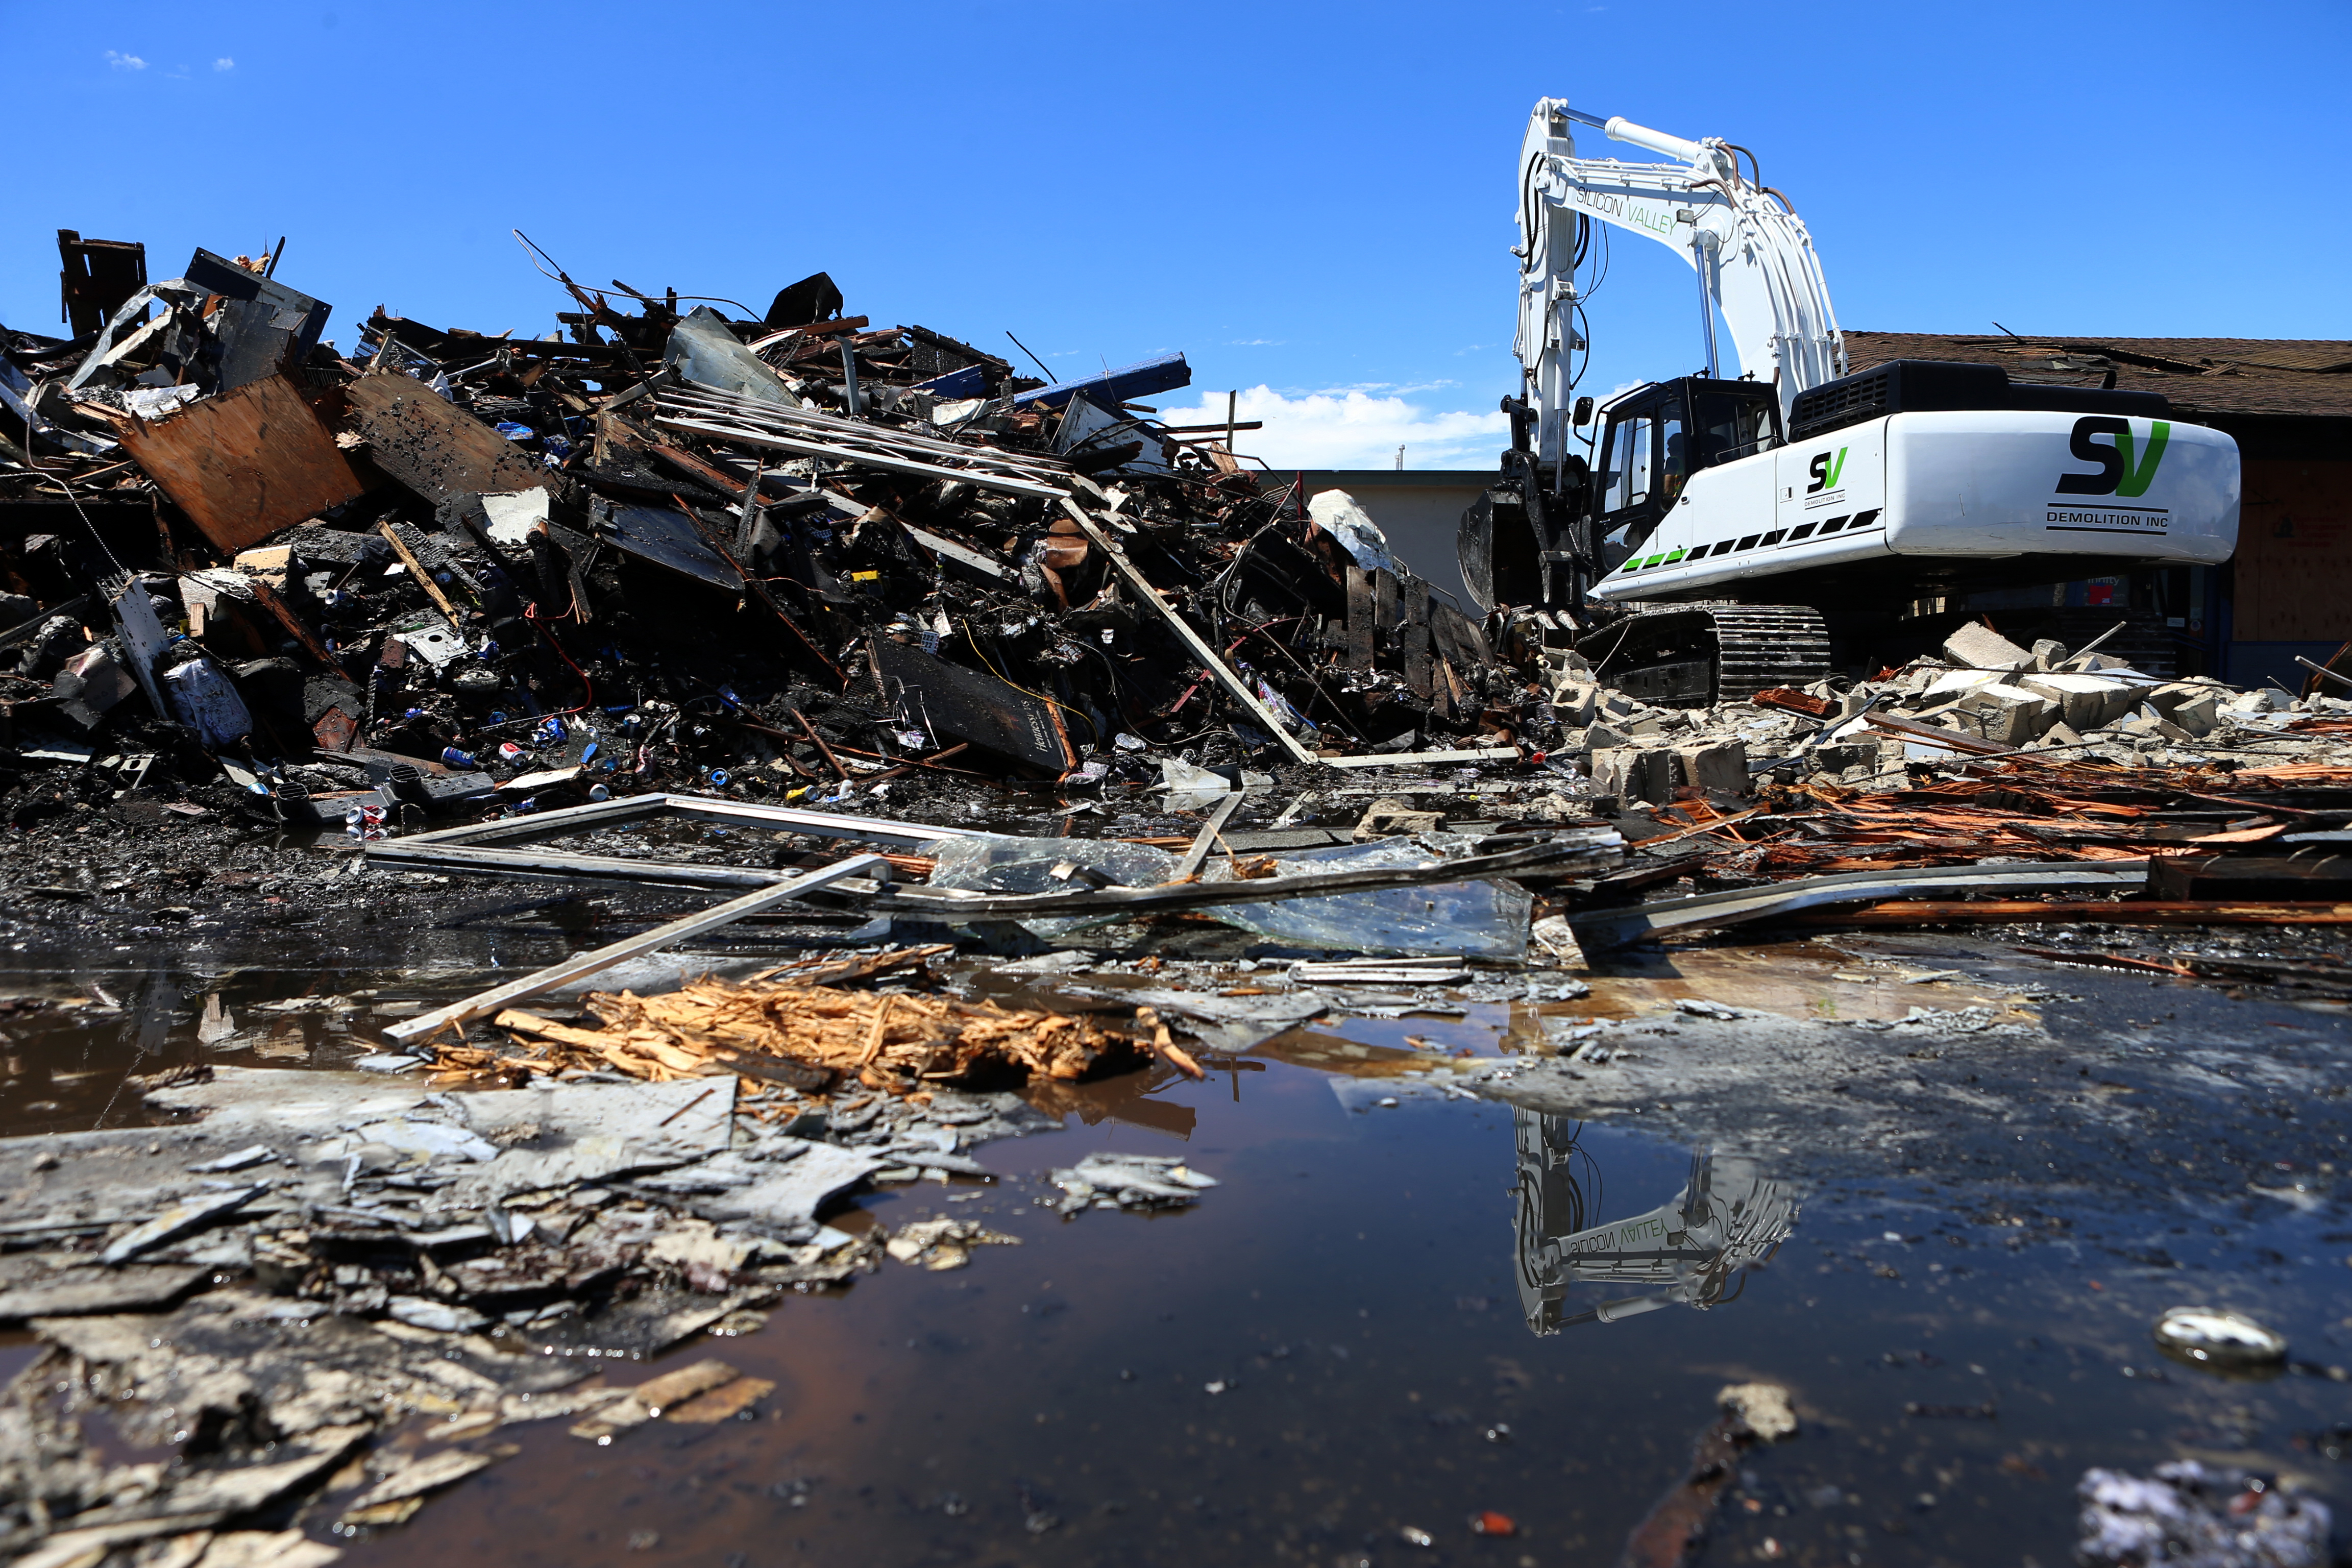 Marina Market, San Leandro - Silicon Valley Demolition, Inc.